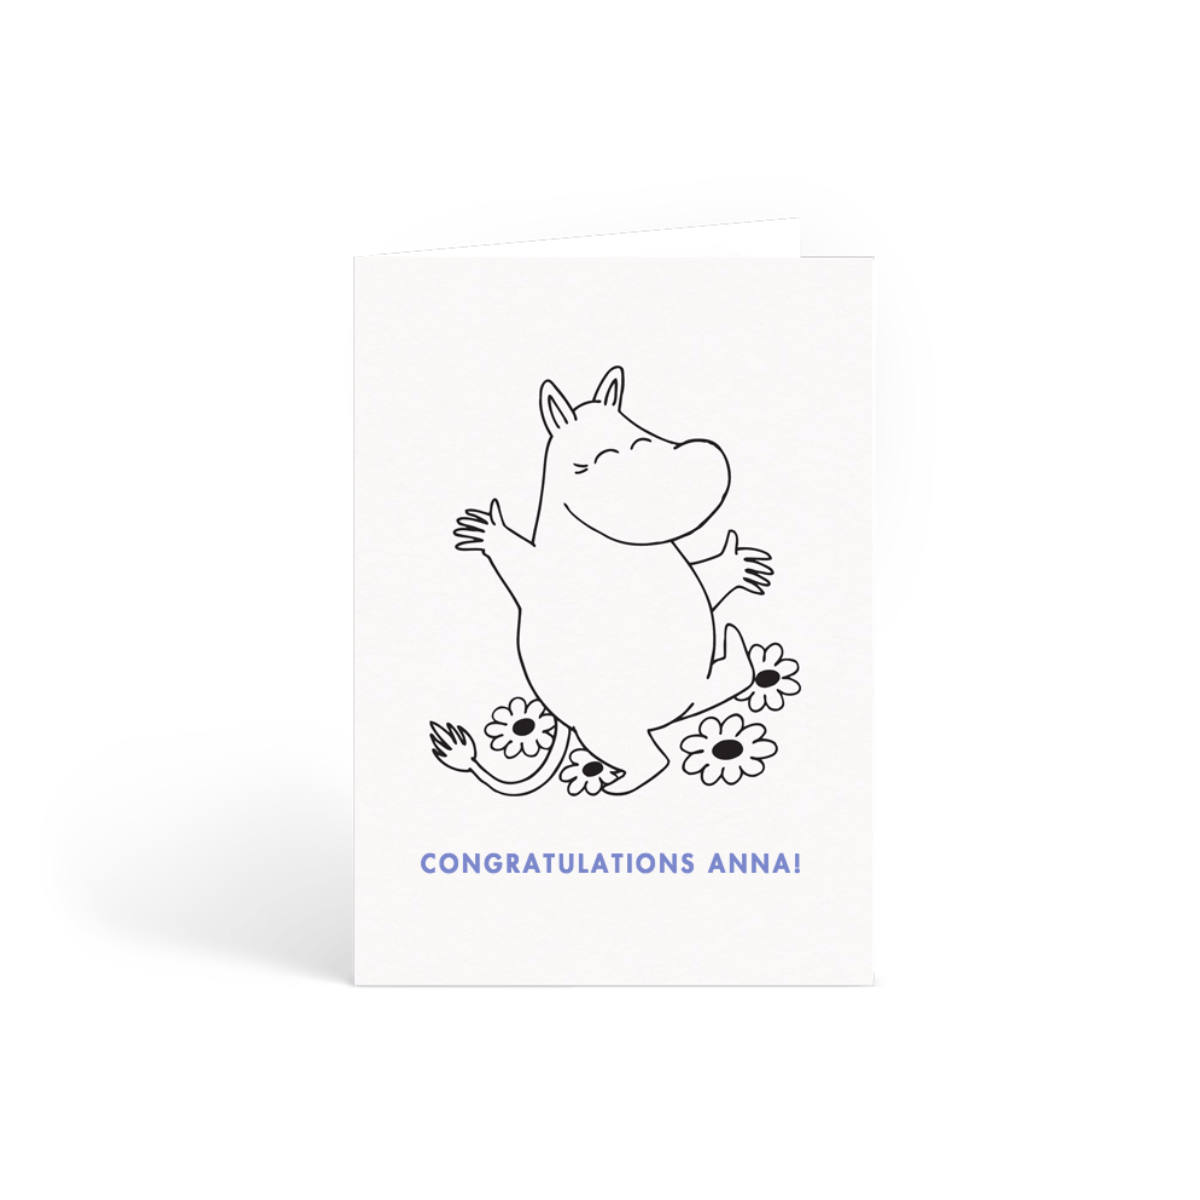 Https%3a%2f%2fwww.papier.com%2fproduct image%2f22789%2f2%2fhappy moomintroll 5723 front 1496330344.png?ixlib=rb 1.1